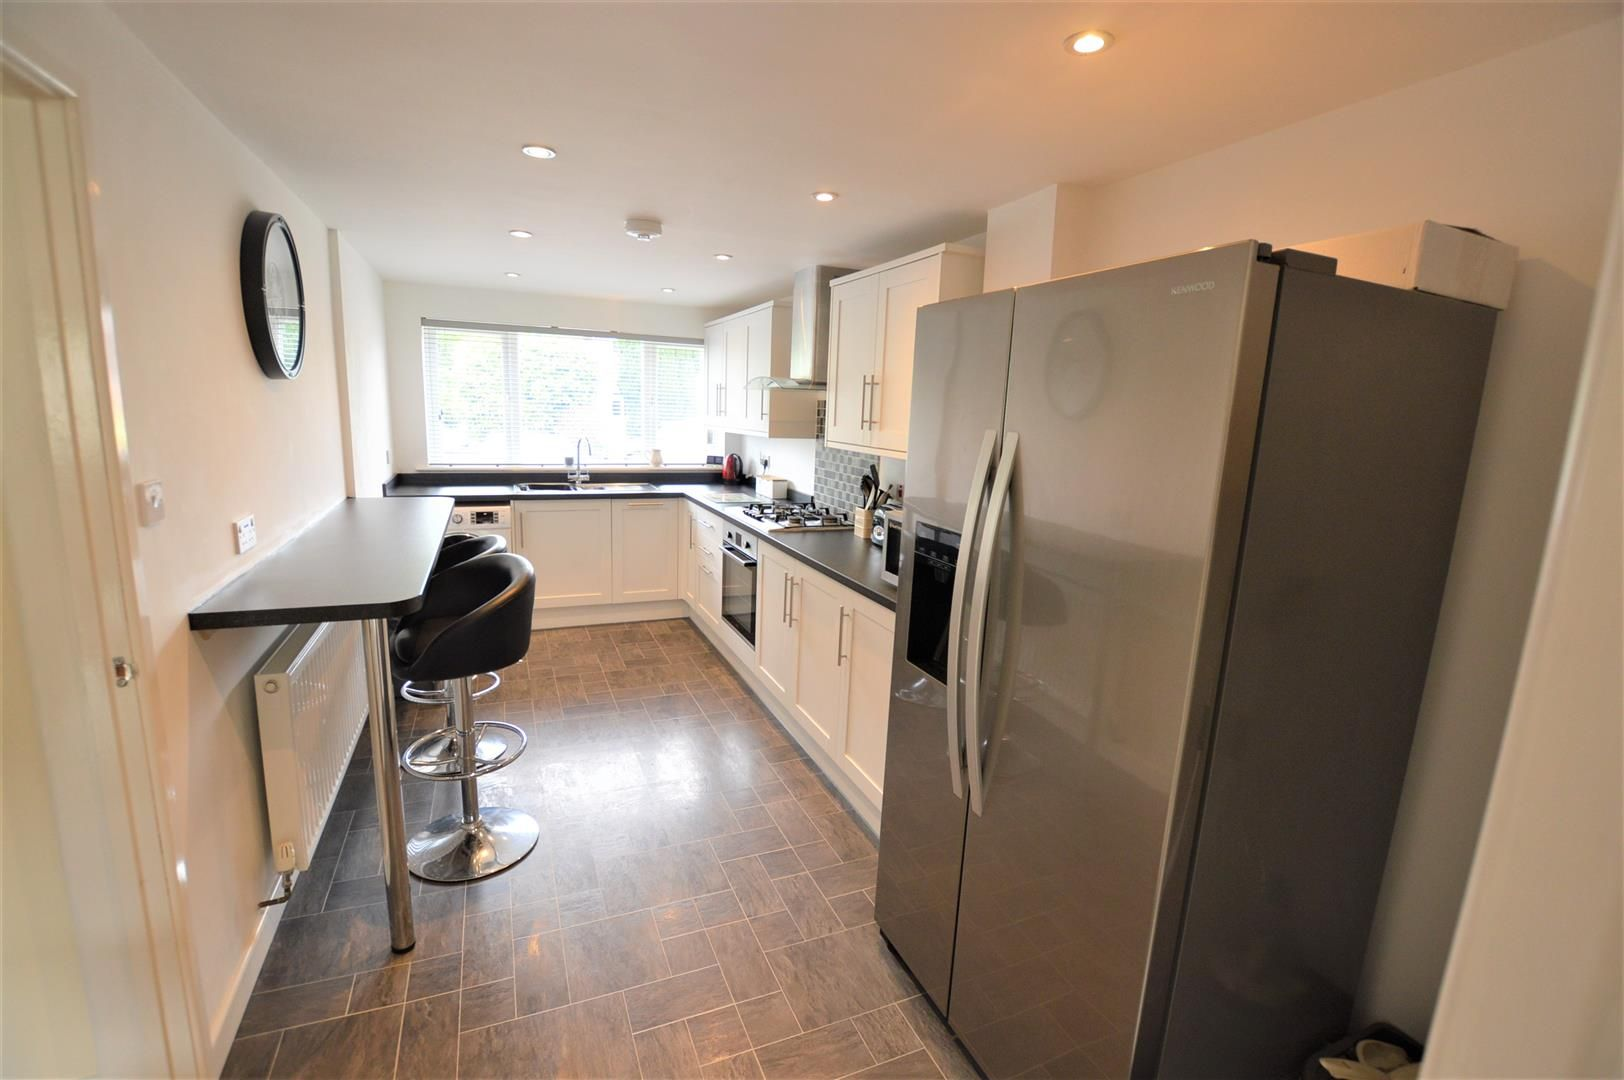 3 bed end-of-terrace for sale in Leominster  - Property Image 4